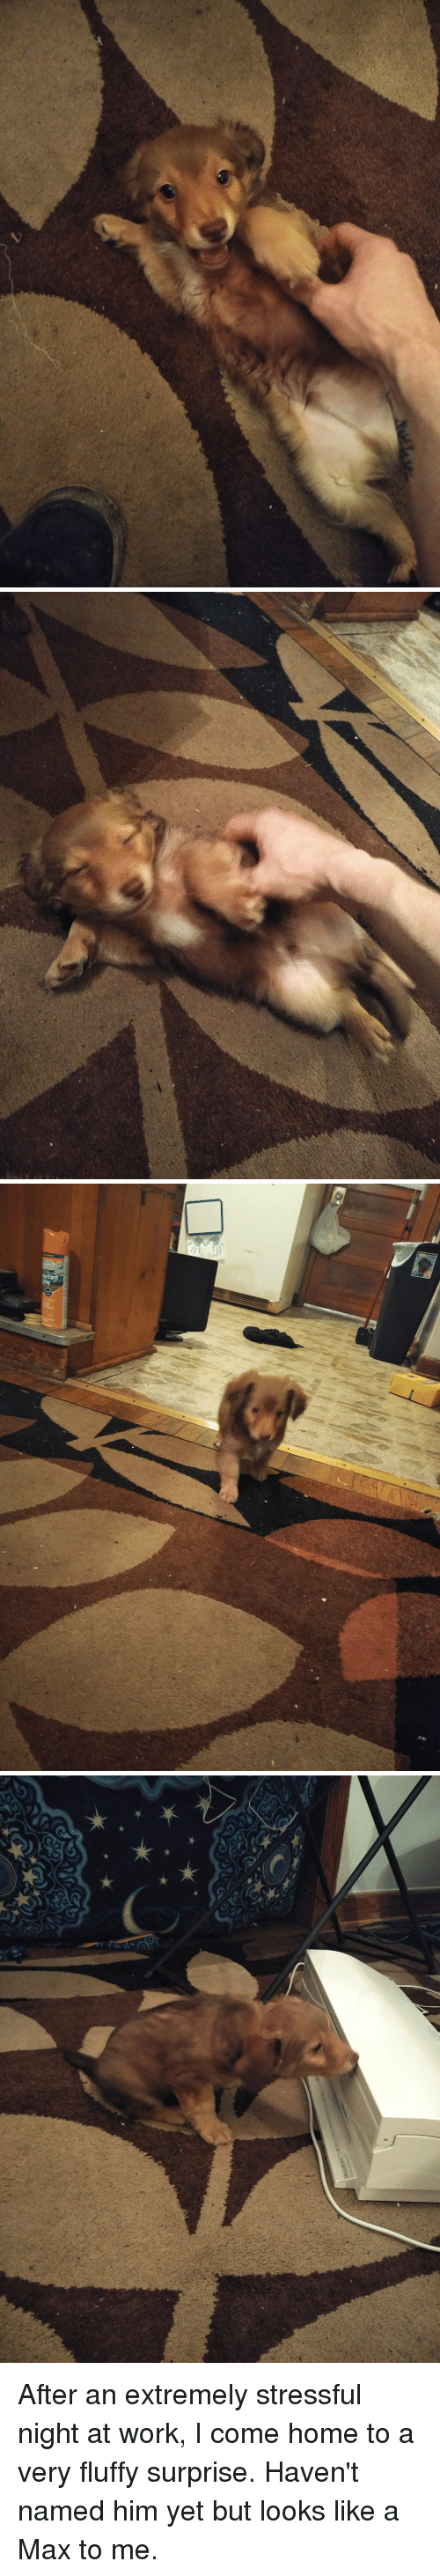 Work, Home, and Him: After an extremely stressful night at work, I come home to a very fluffy surprise. Haven't named him yet but looks like a Max to me.